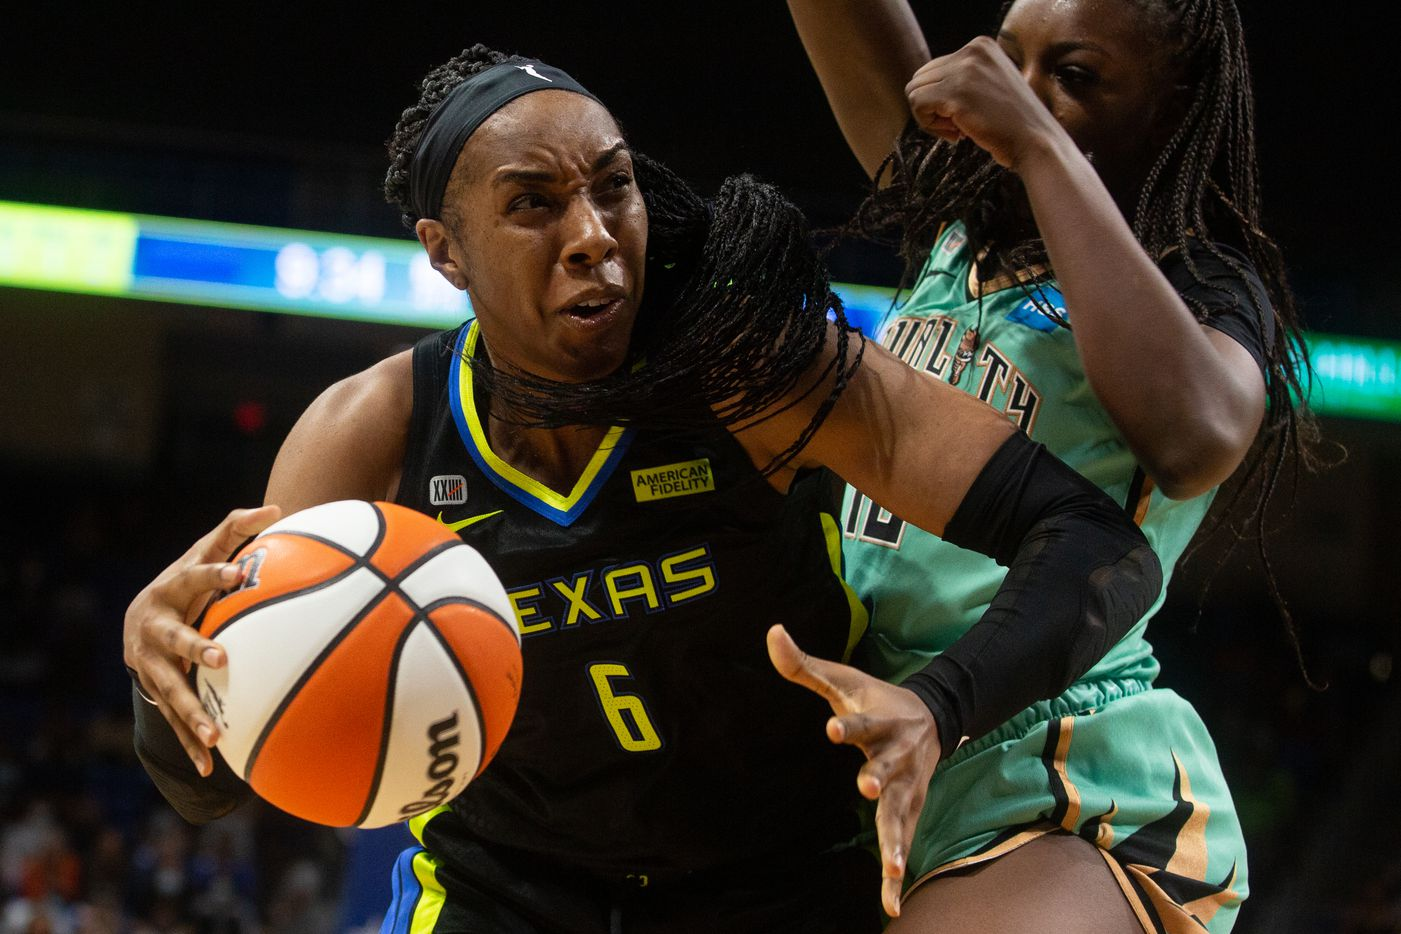 Dallas Wings forward Kayla Thorton (6) drives to the basket against NY Liberty's forward Michaela Onyenwere (12) at College Park Center in Arlington, TX on September 11, 2021.  (Shelby Tauber/Special Contributor)